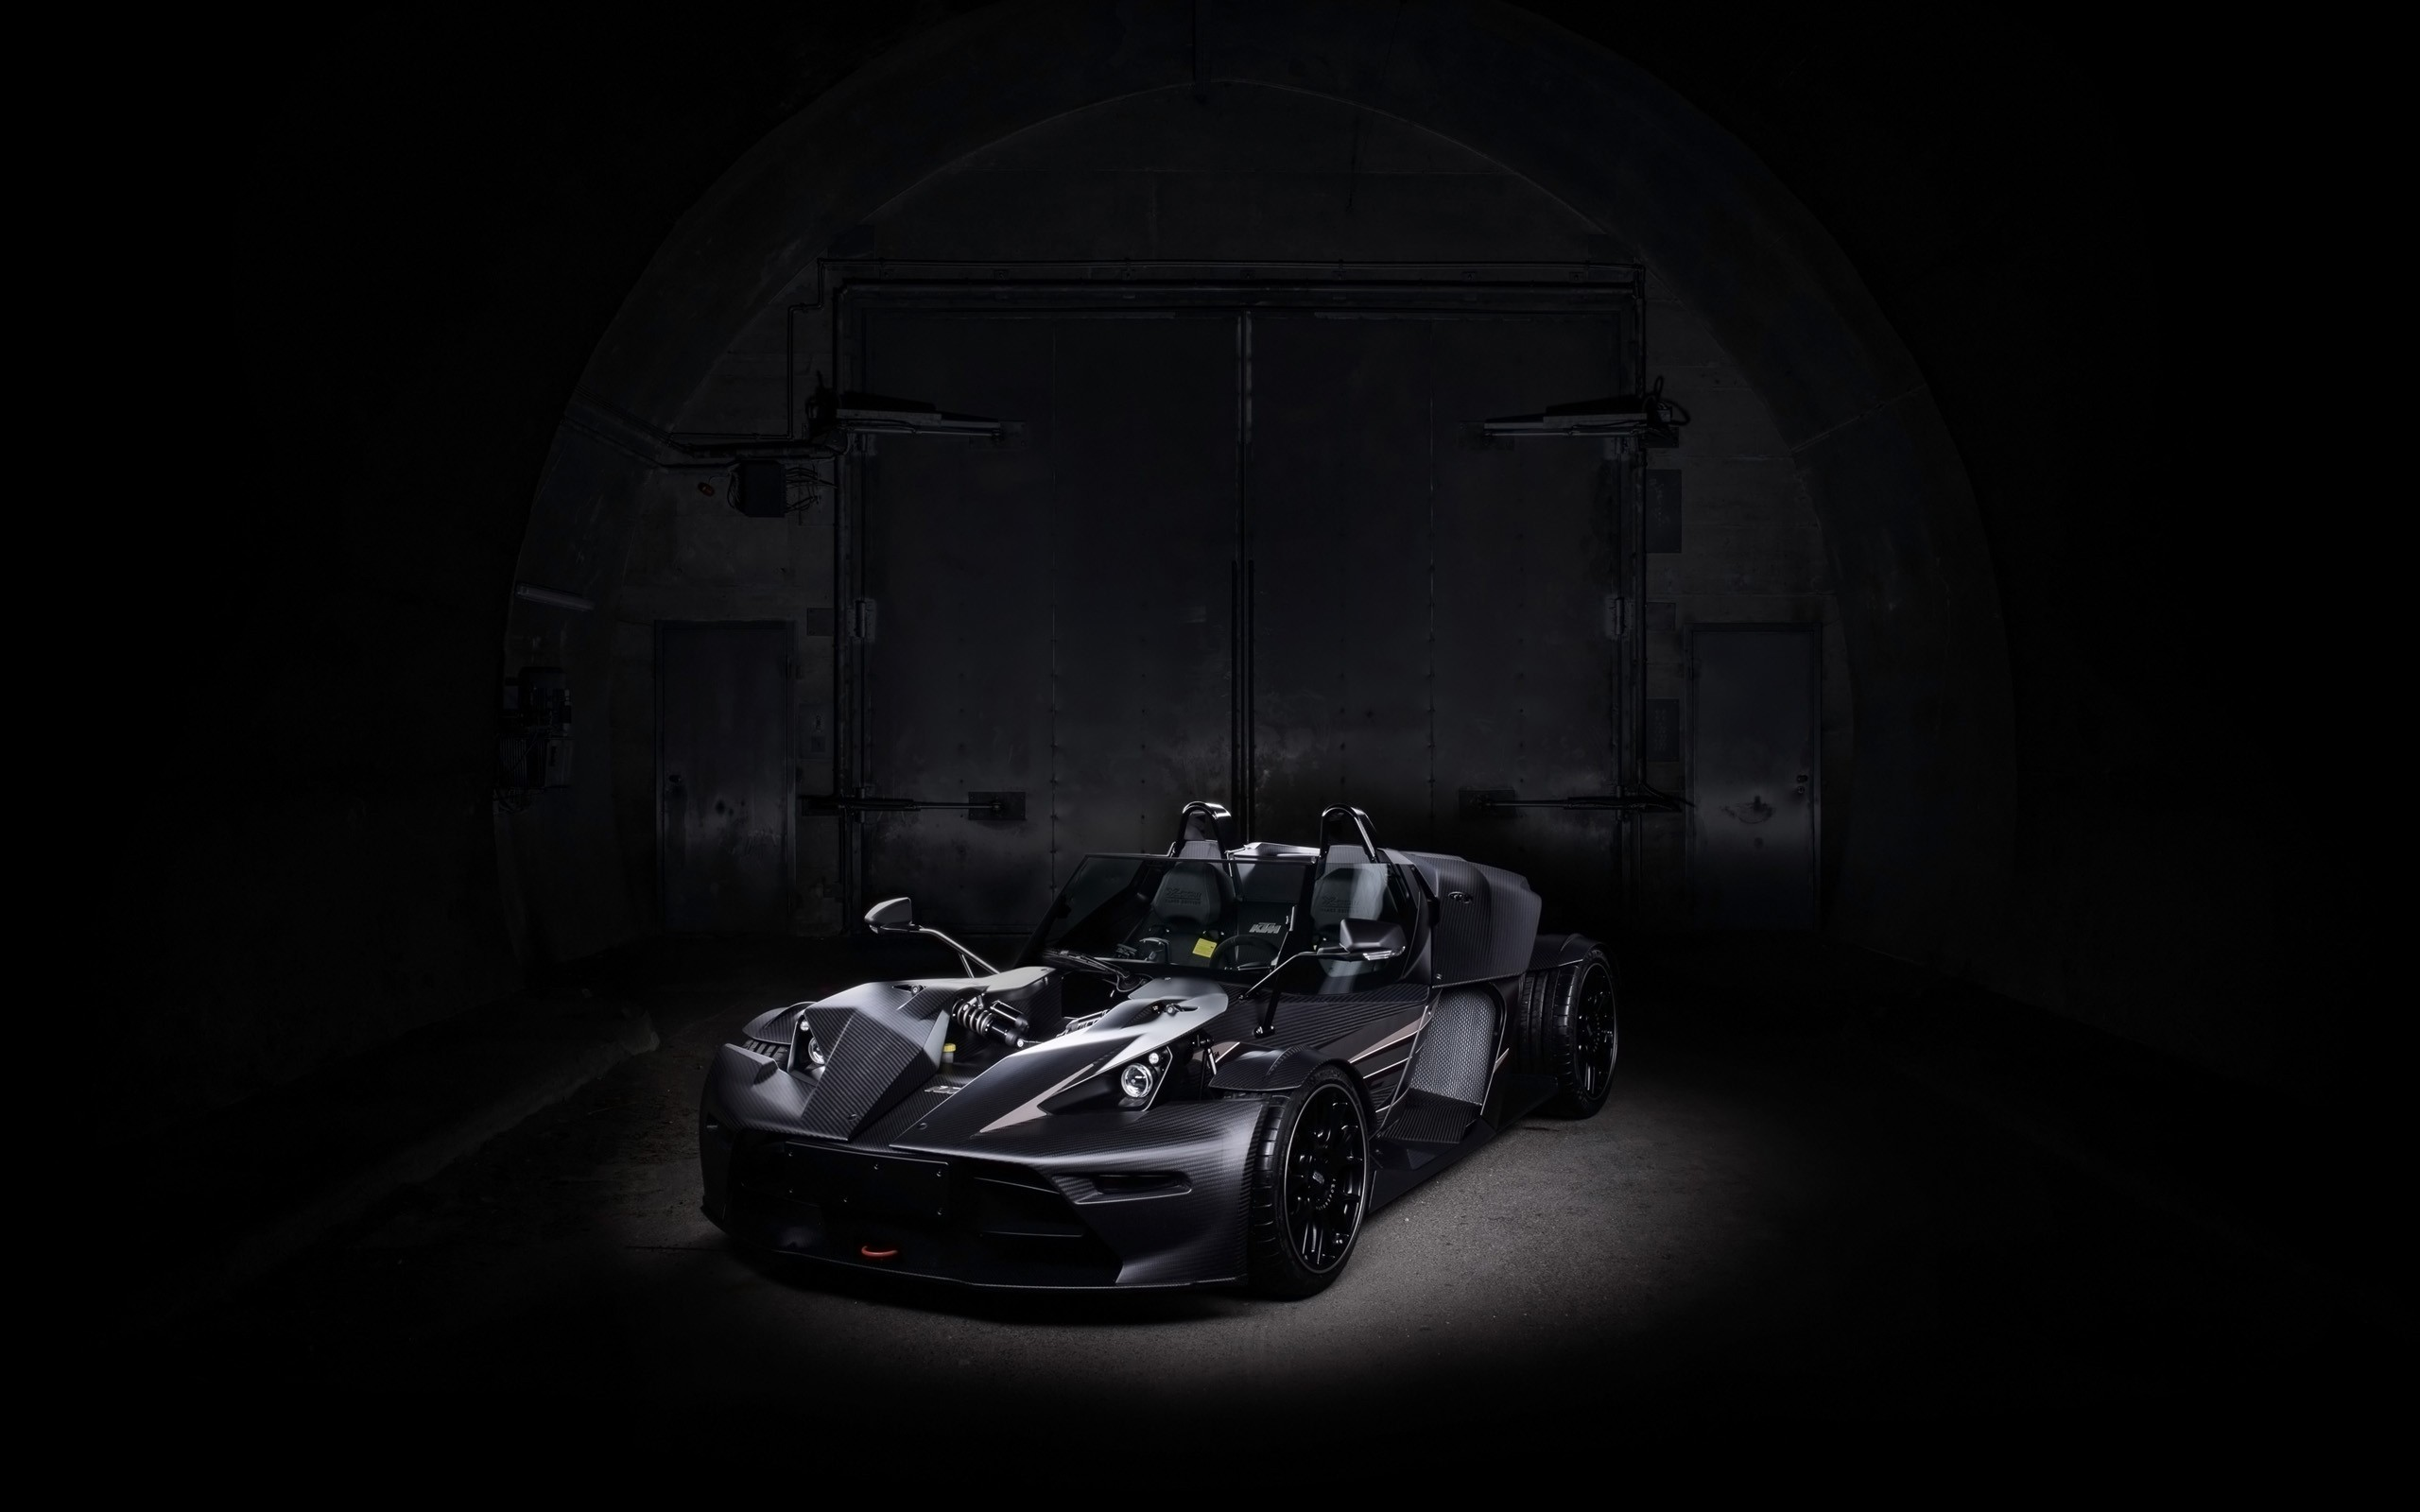 Black Cars Wallpaper 7 Background: 2016 KTM X Bow GT Black Edition Wallpaper